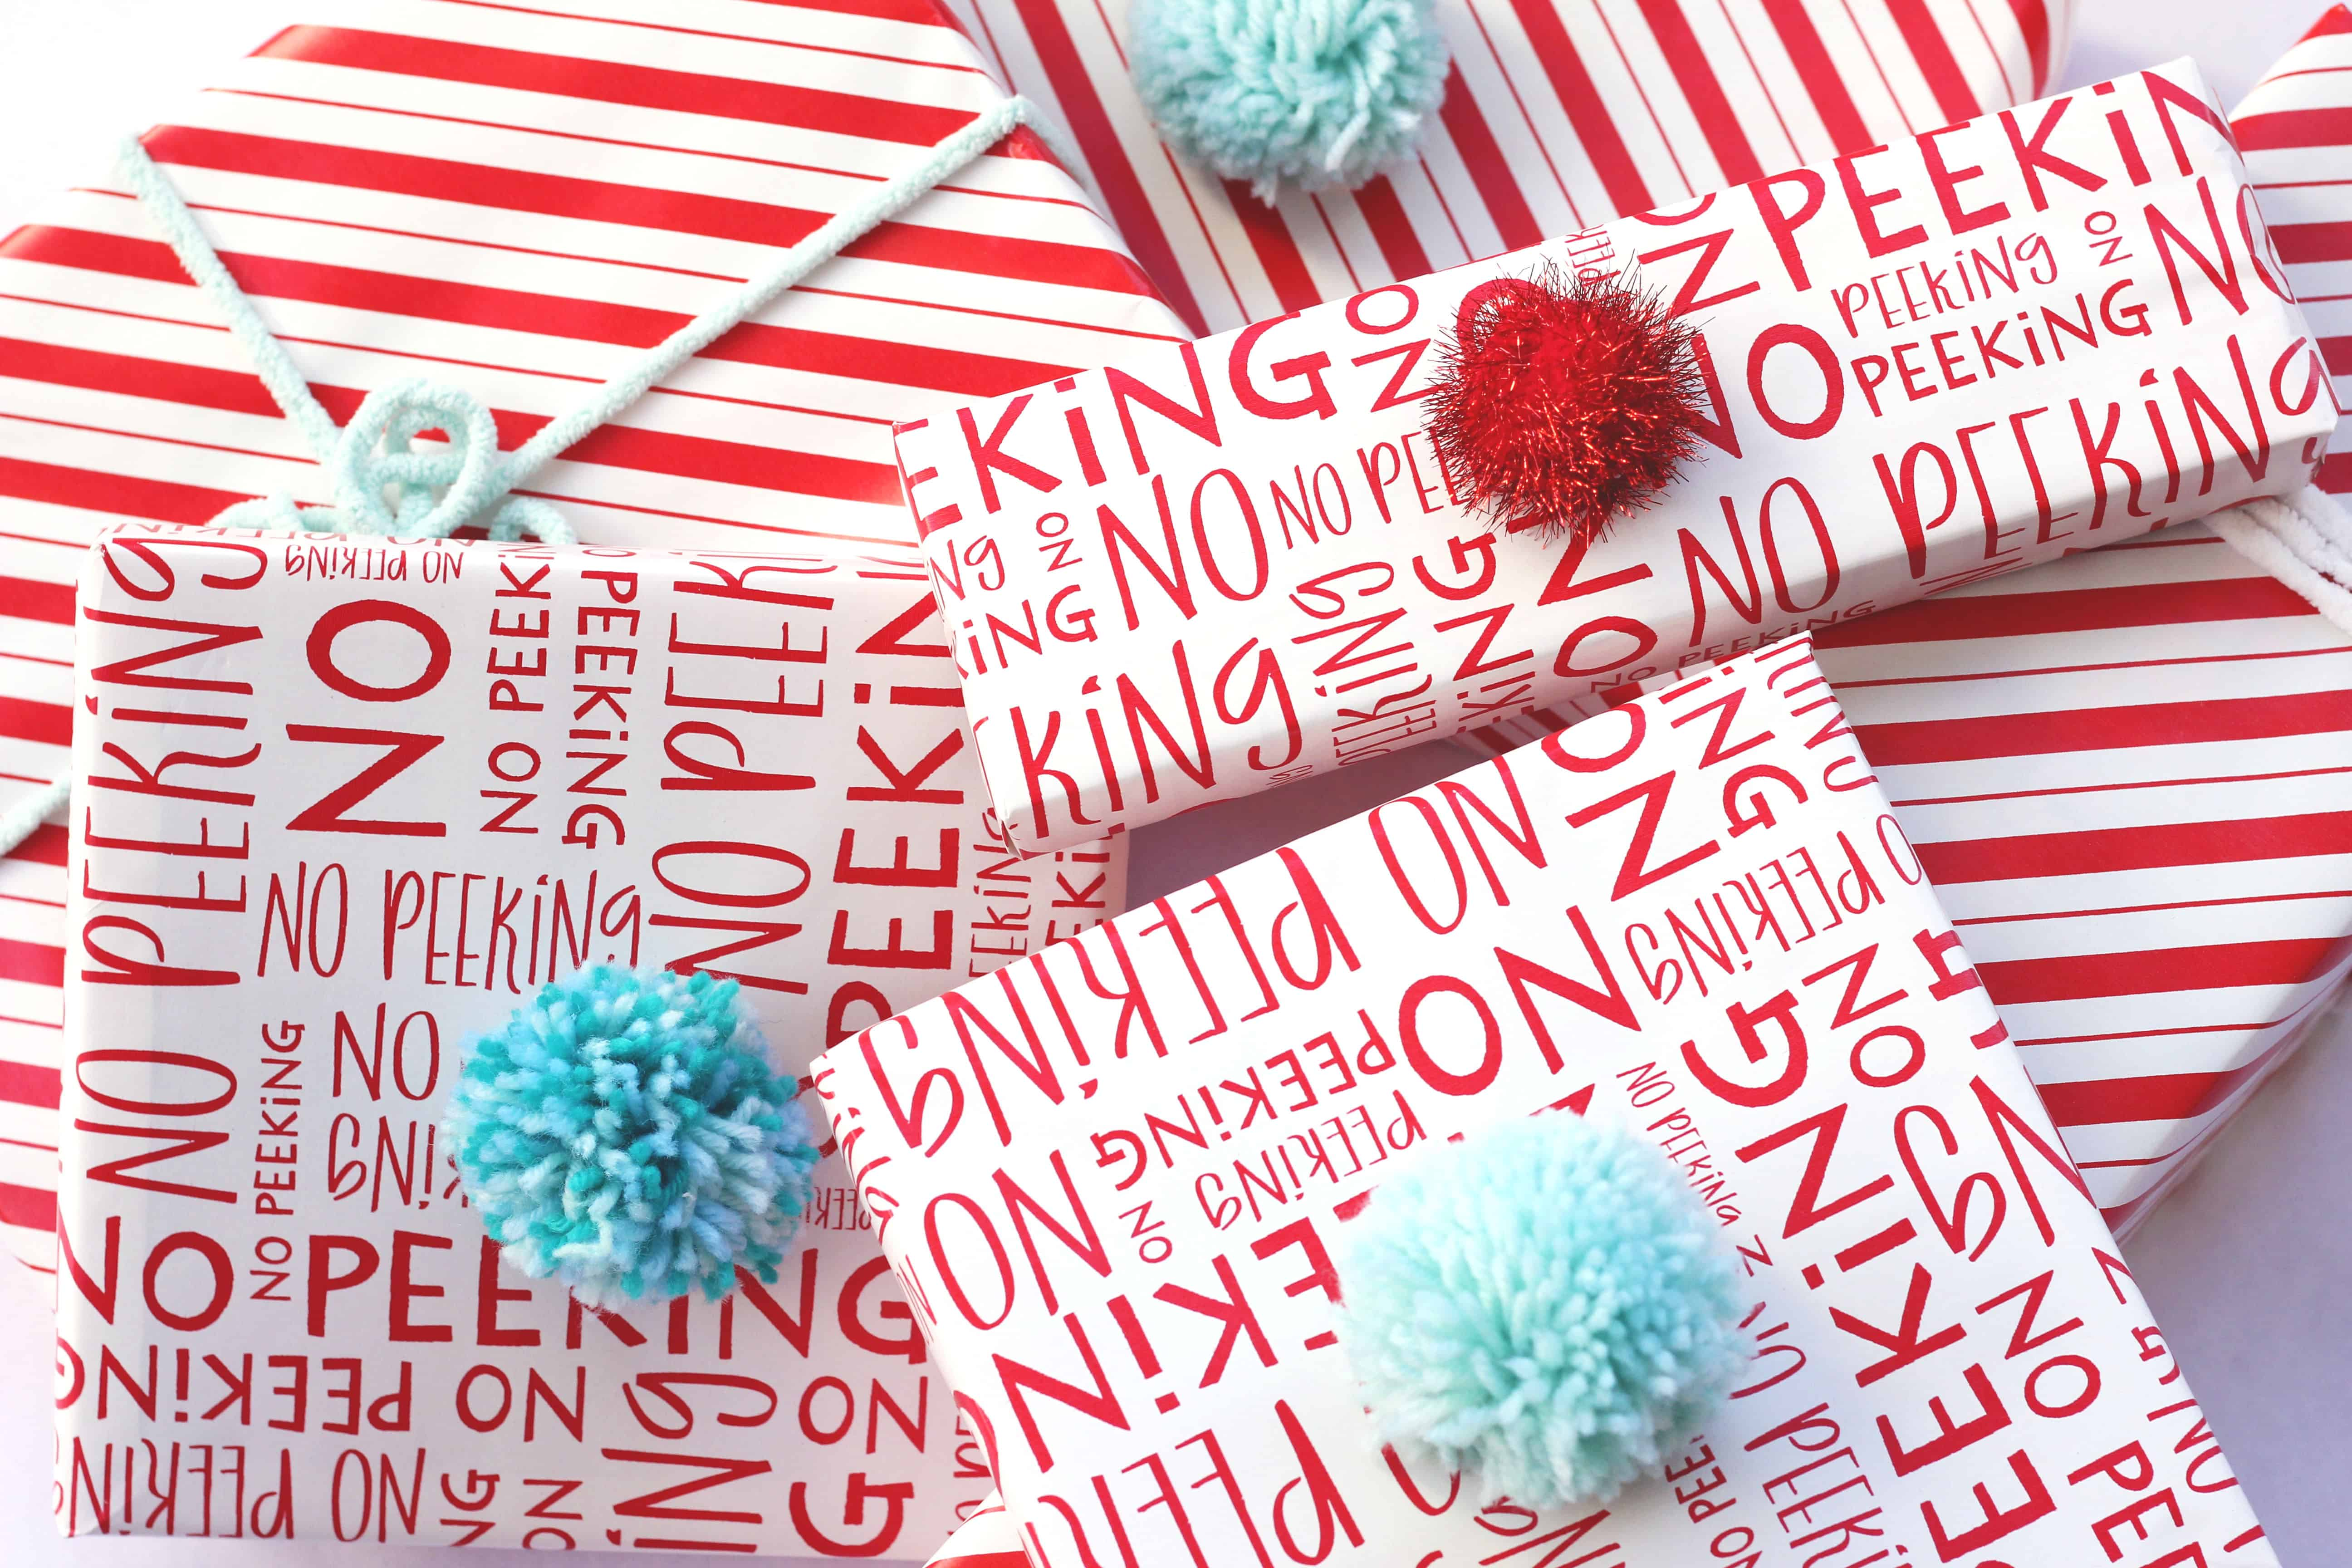 Gift toppers made from yarn and pom poms for your Christmas gifts, birthday gifts, any gifts!